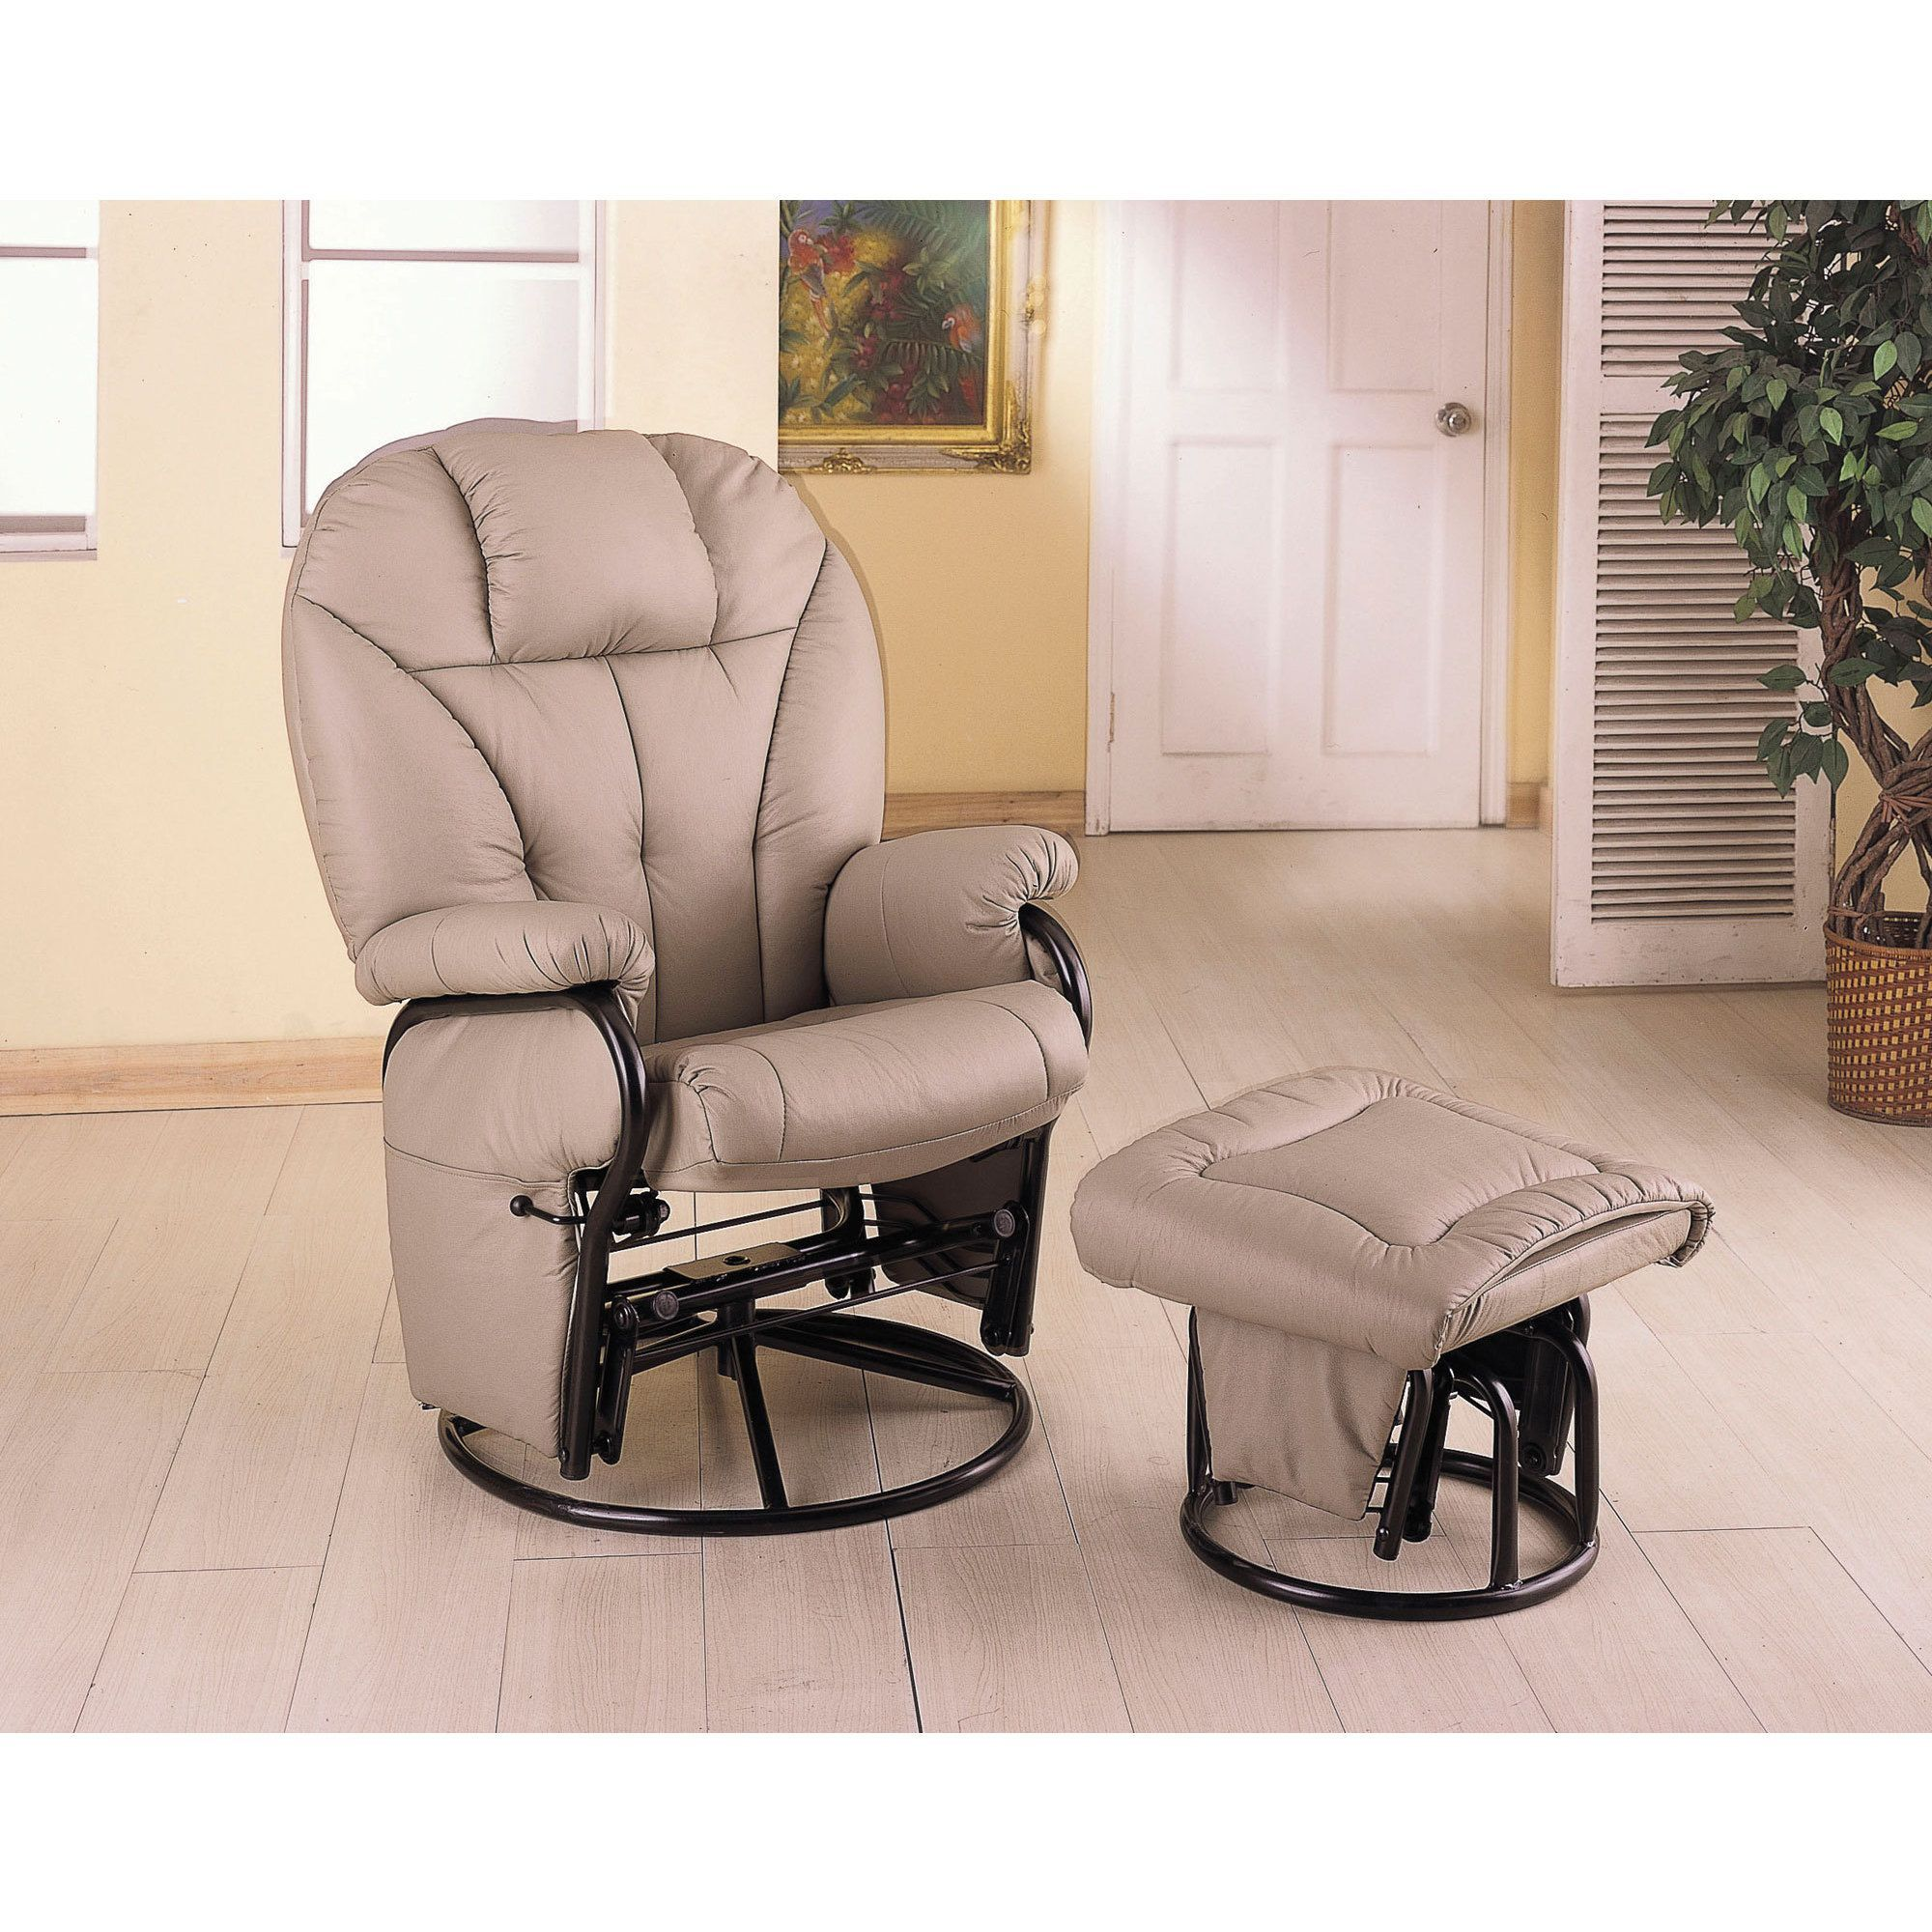 Pleasant Coaster Bone Leatherette Glider With Ottoman Products Camellatalisay Diy Chair Ideas Camellatalisaycom